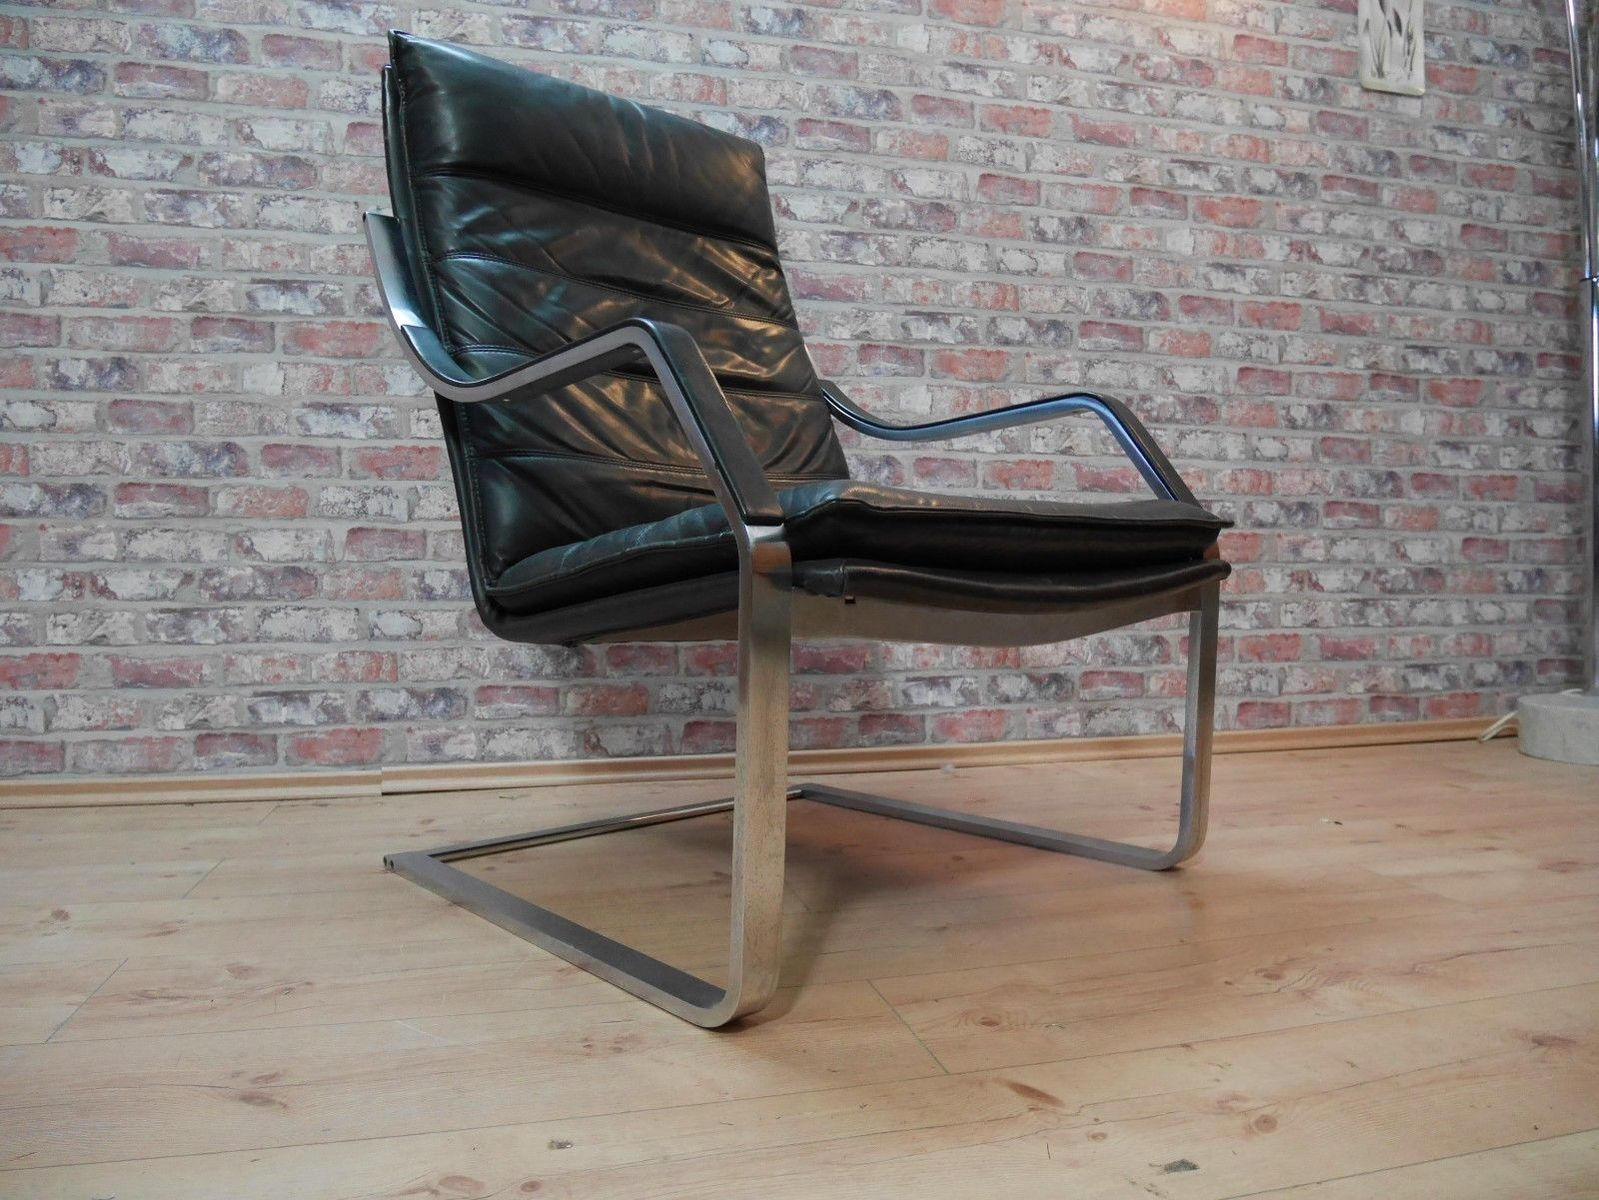 Vintage komet d250 lounge chair by rudolf b glatzel for knoll inc knoll international for - Knoll inc chairs ...